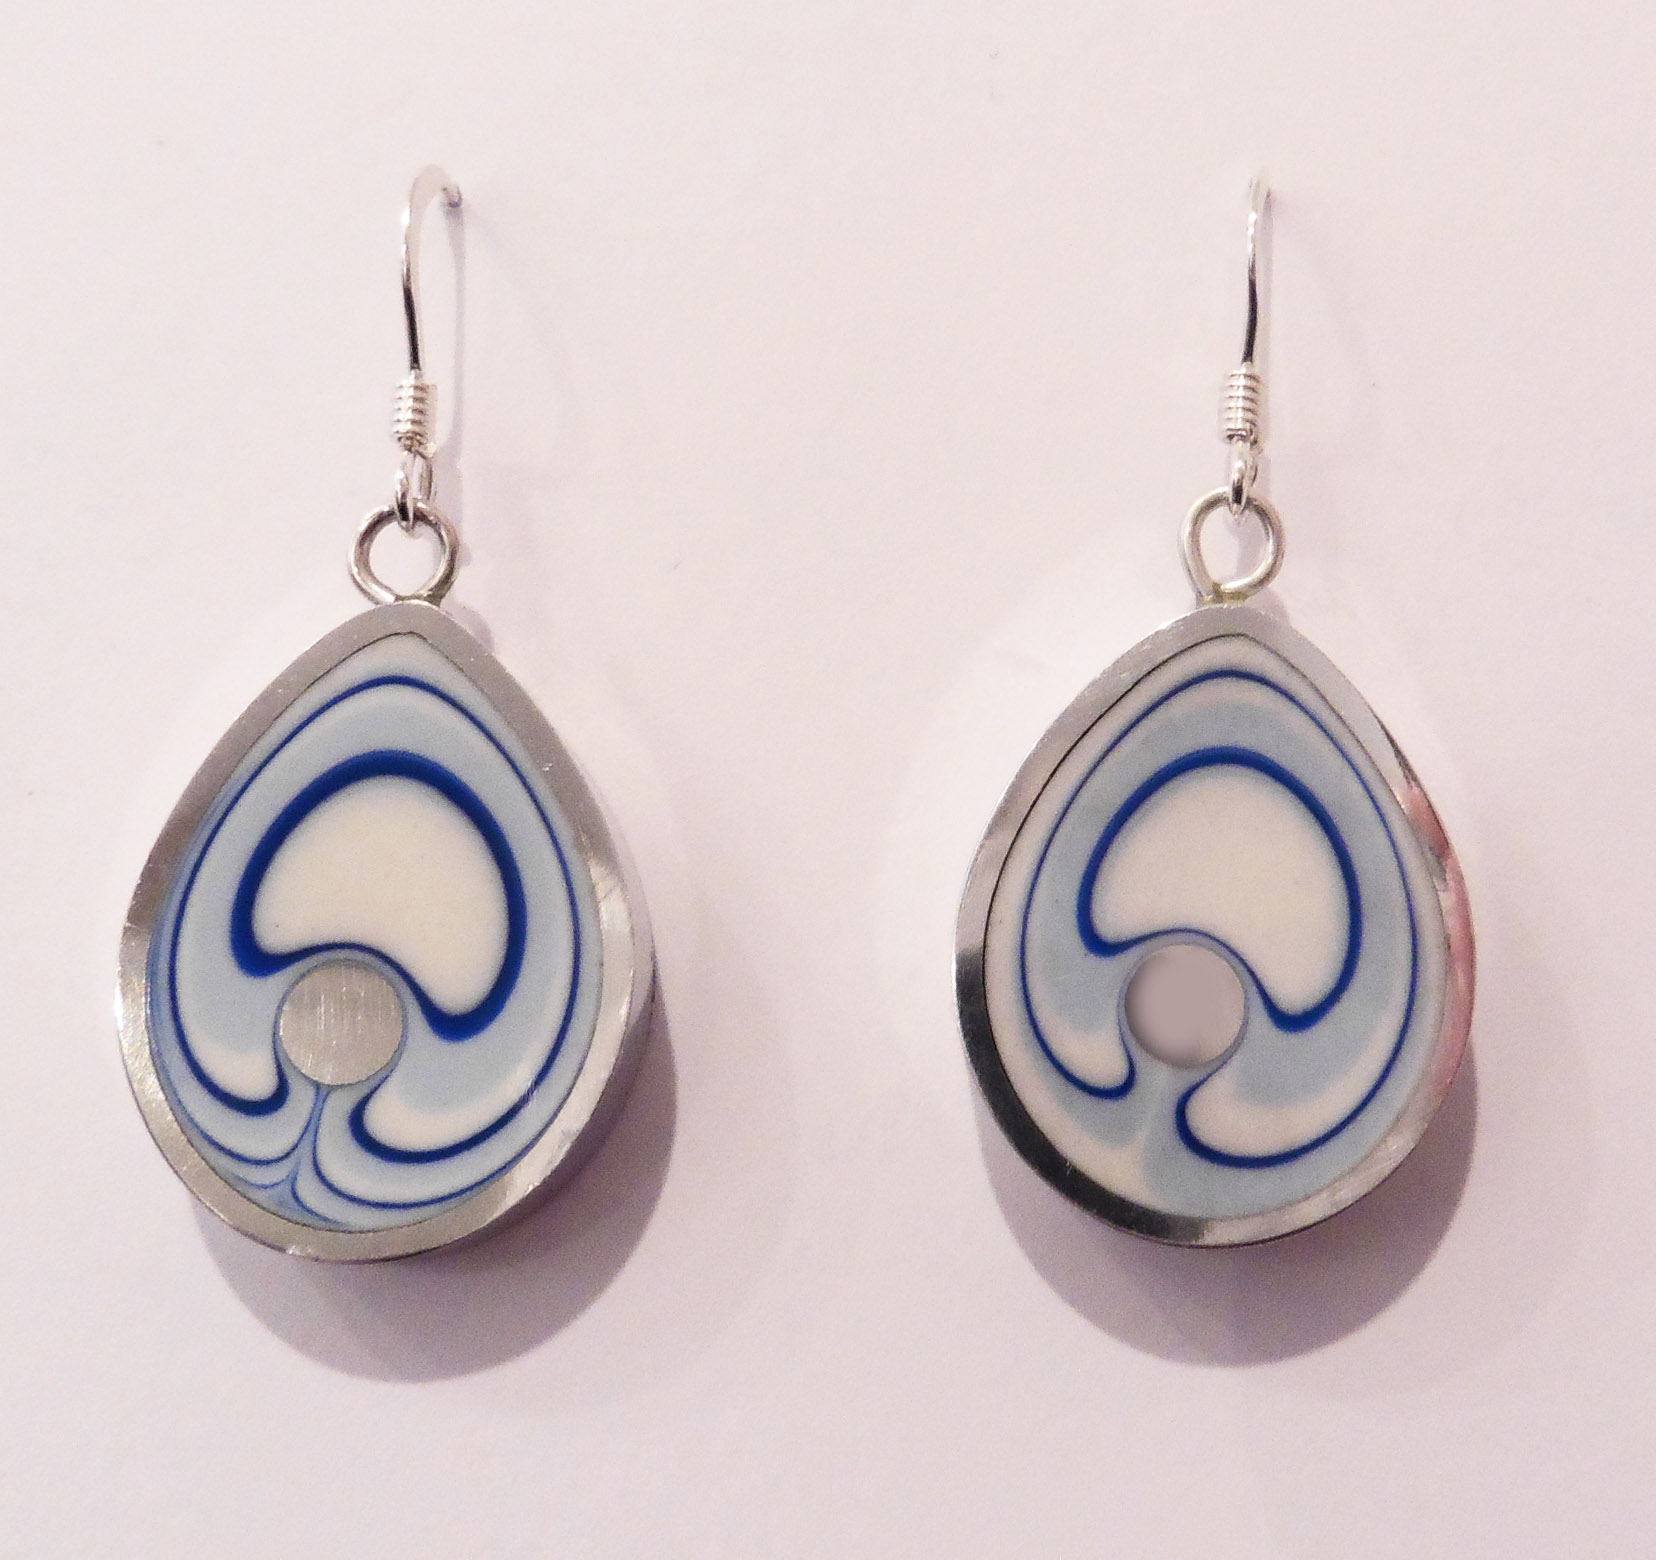 Teardrop seaside earrings